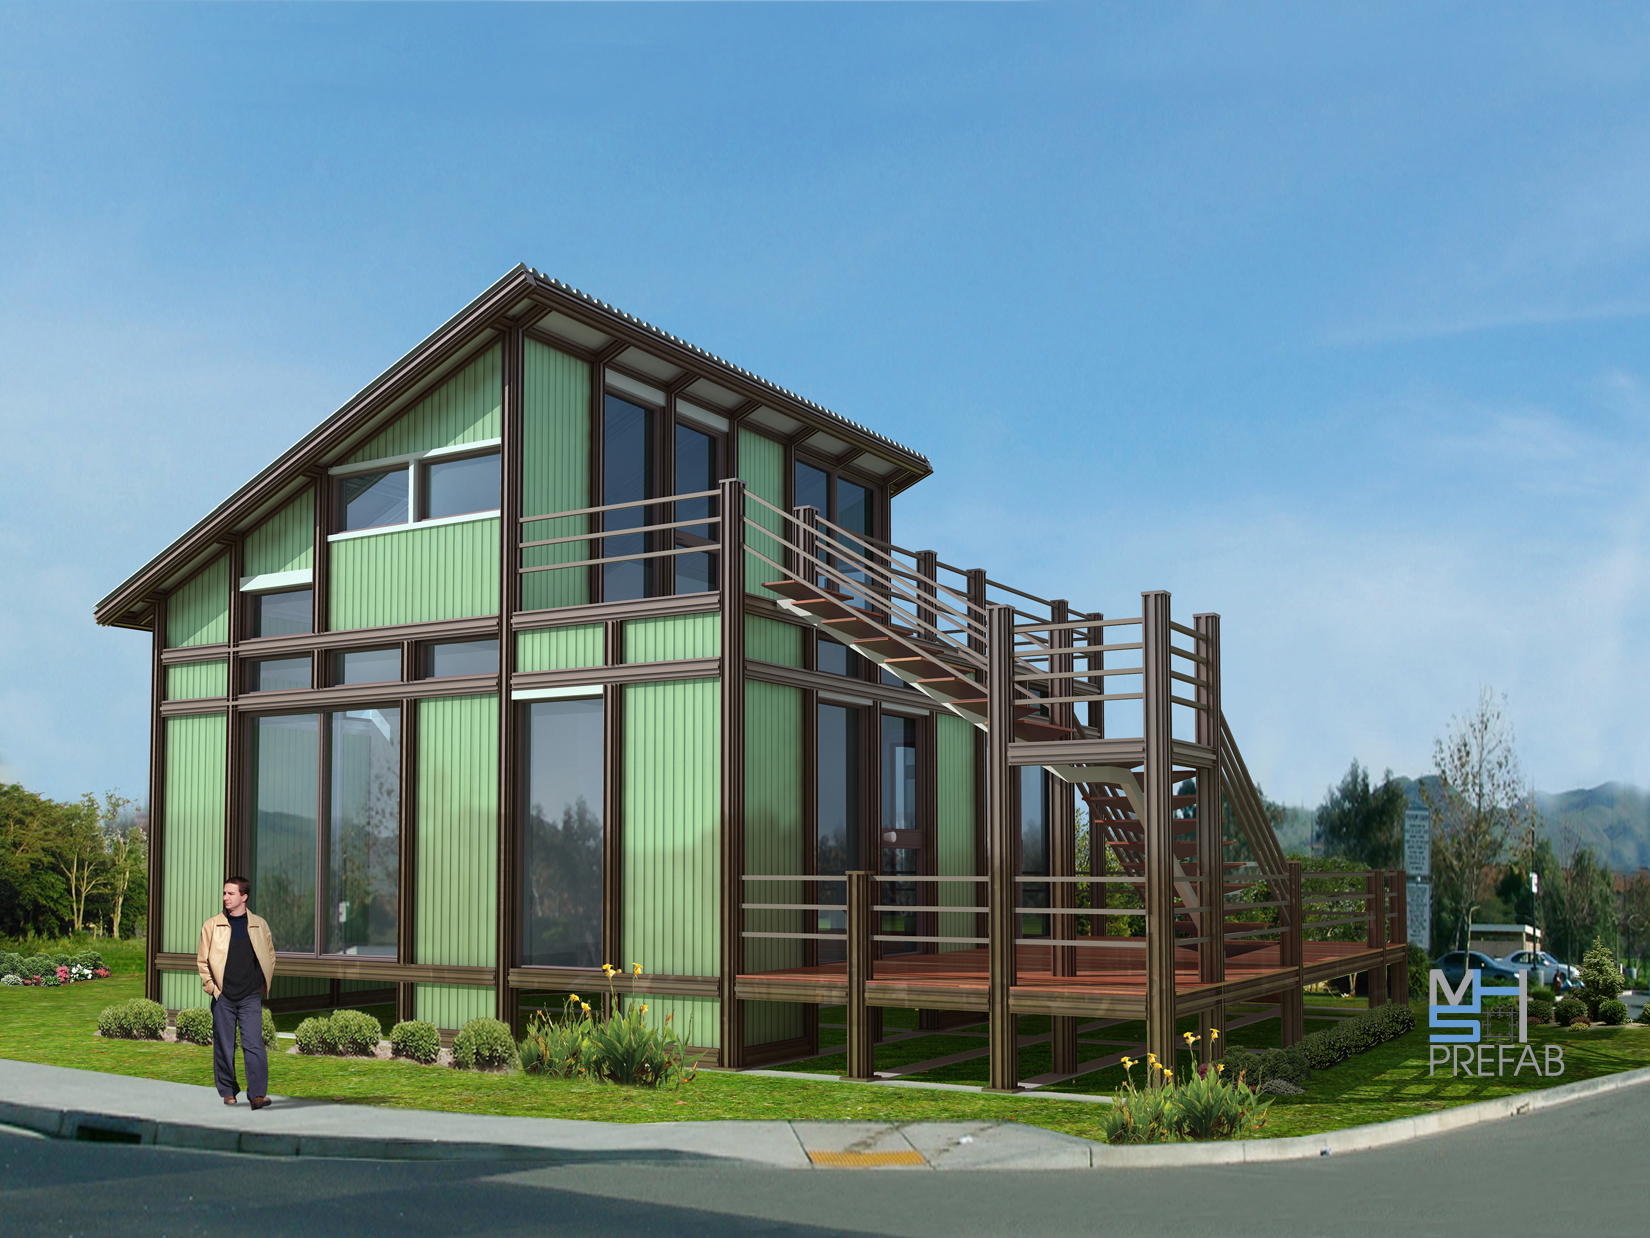 Modular Housing System MHS Ensures Global Connection with China